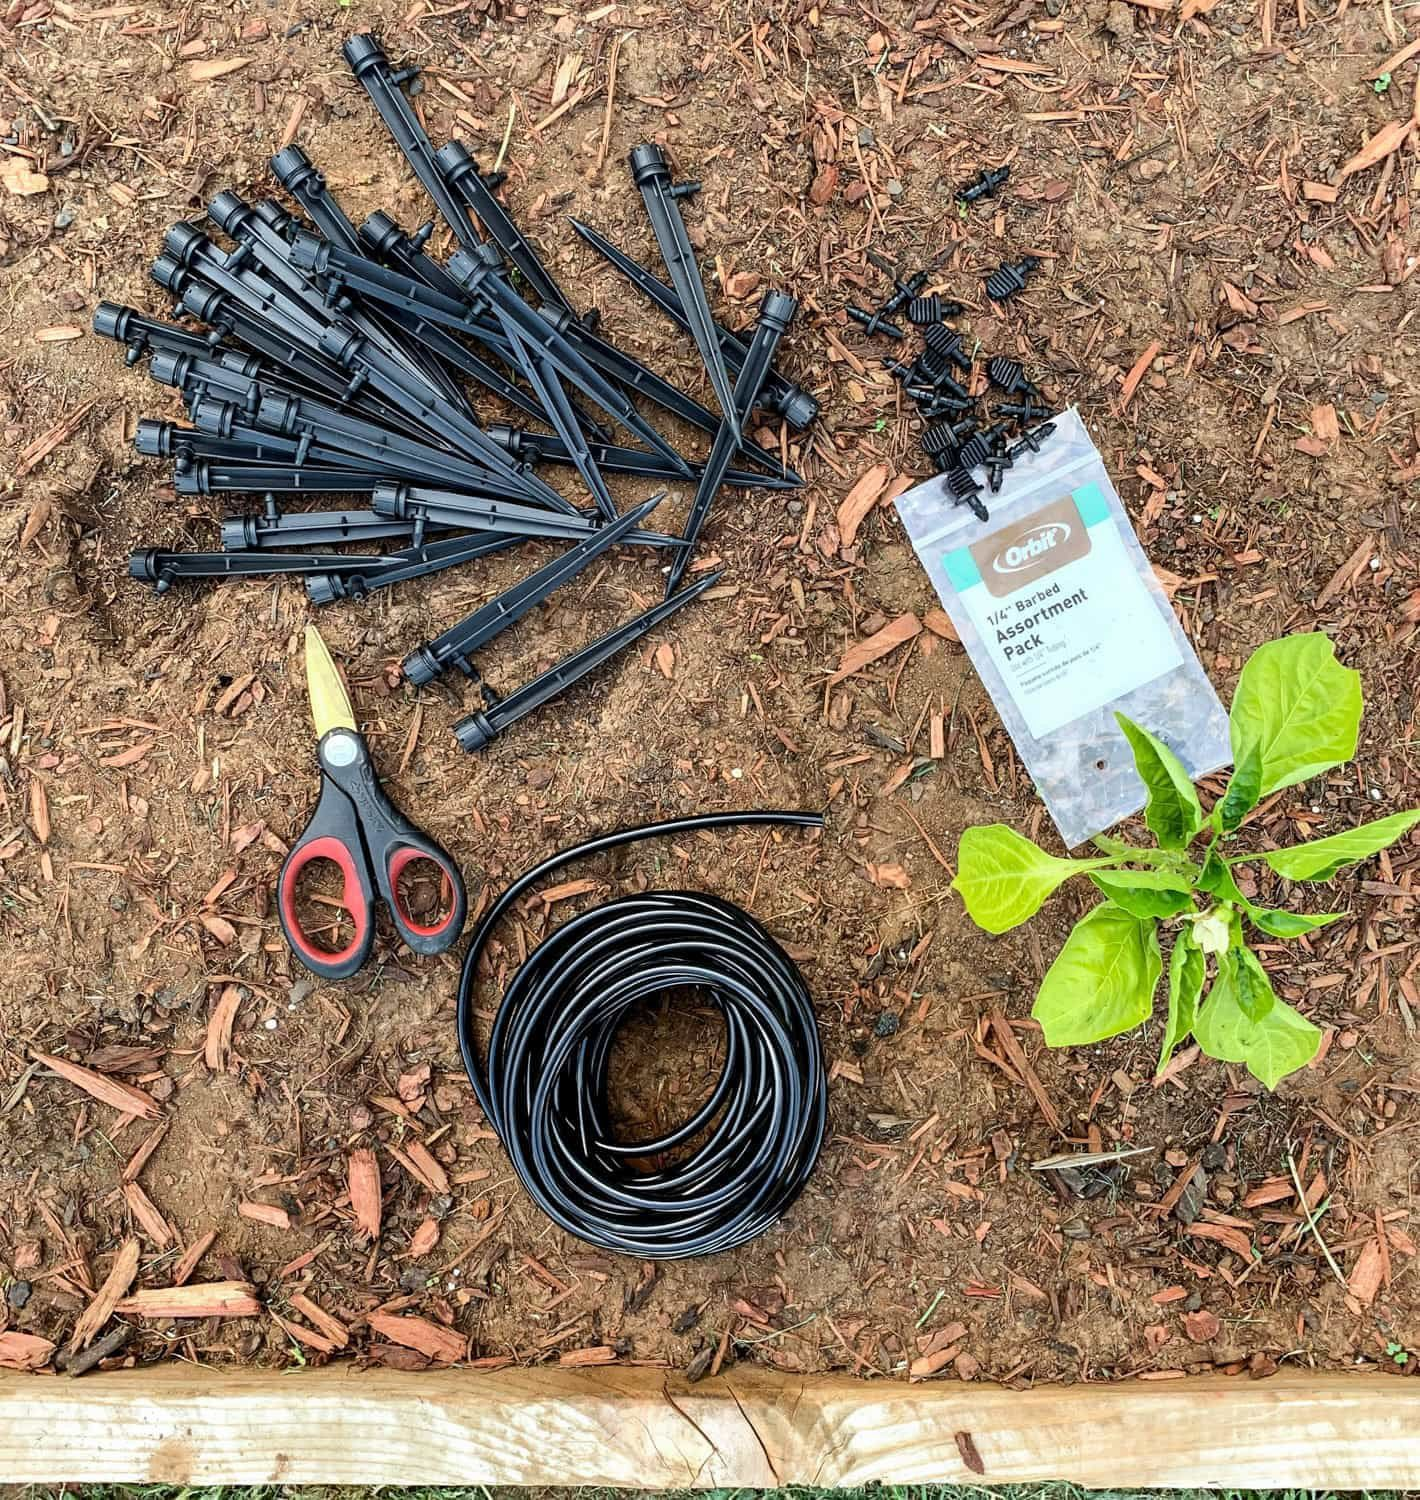 How To Install A Drip Irrigation System With Automatic Watering In 2020 Watering Raised Garden Beds Garden Watering System Drip Irrigation System